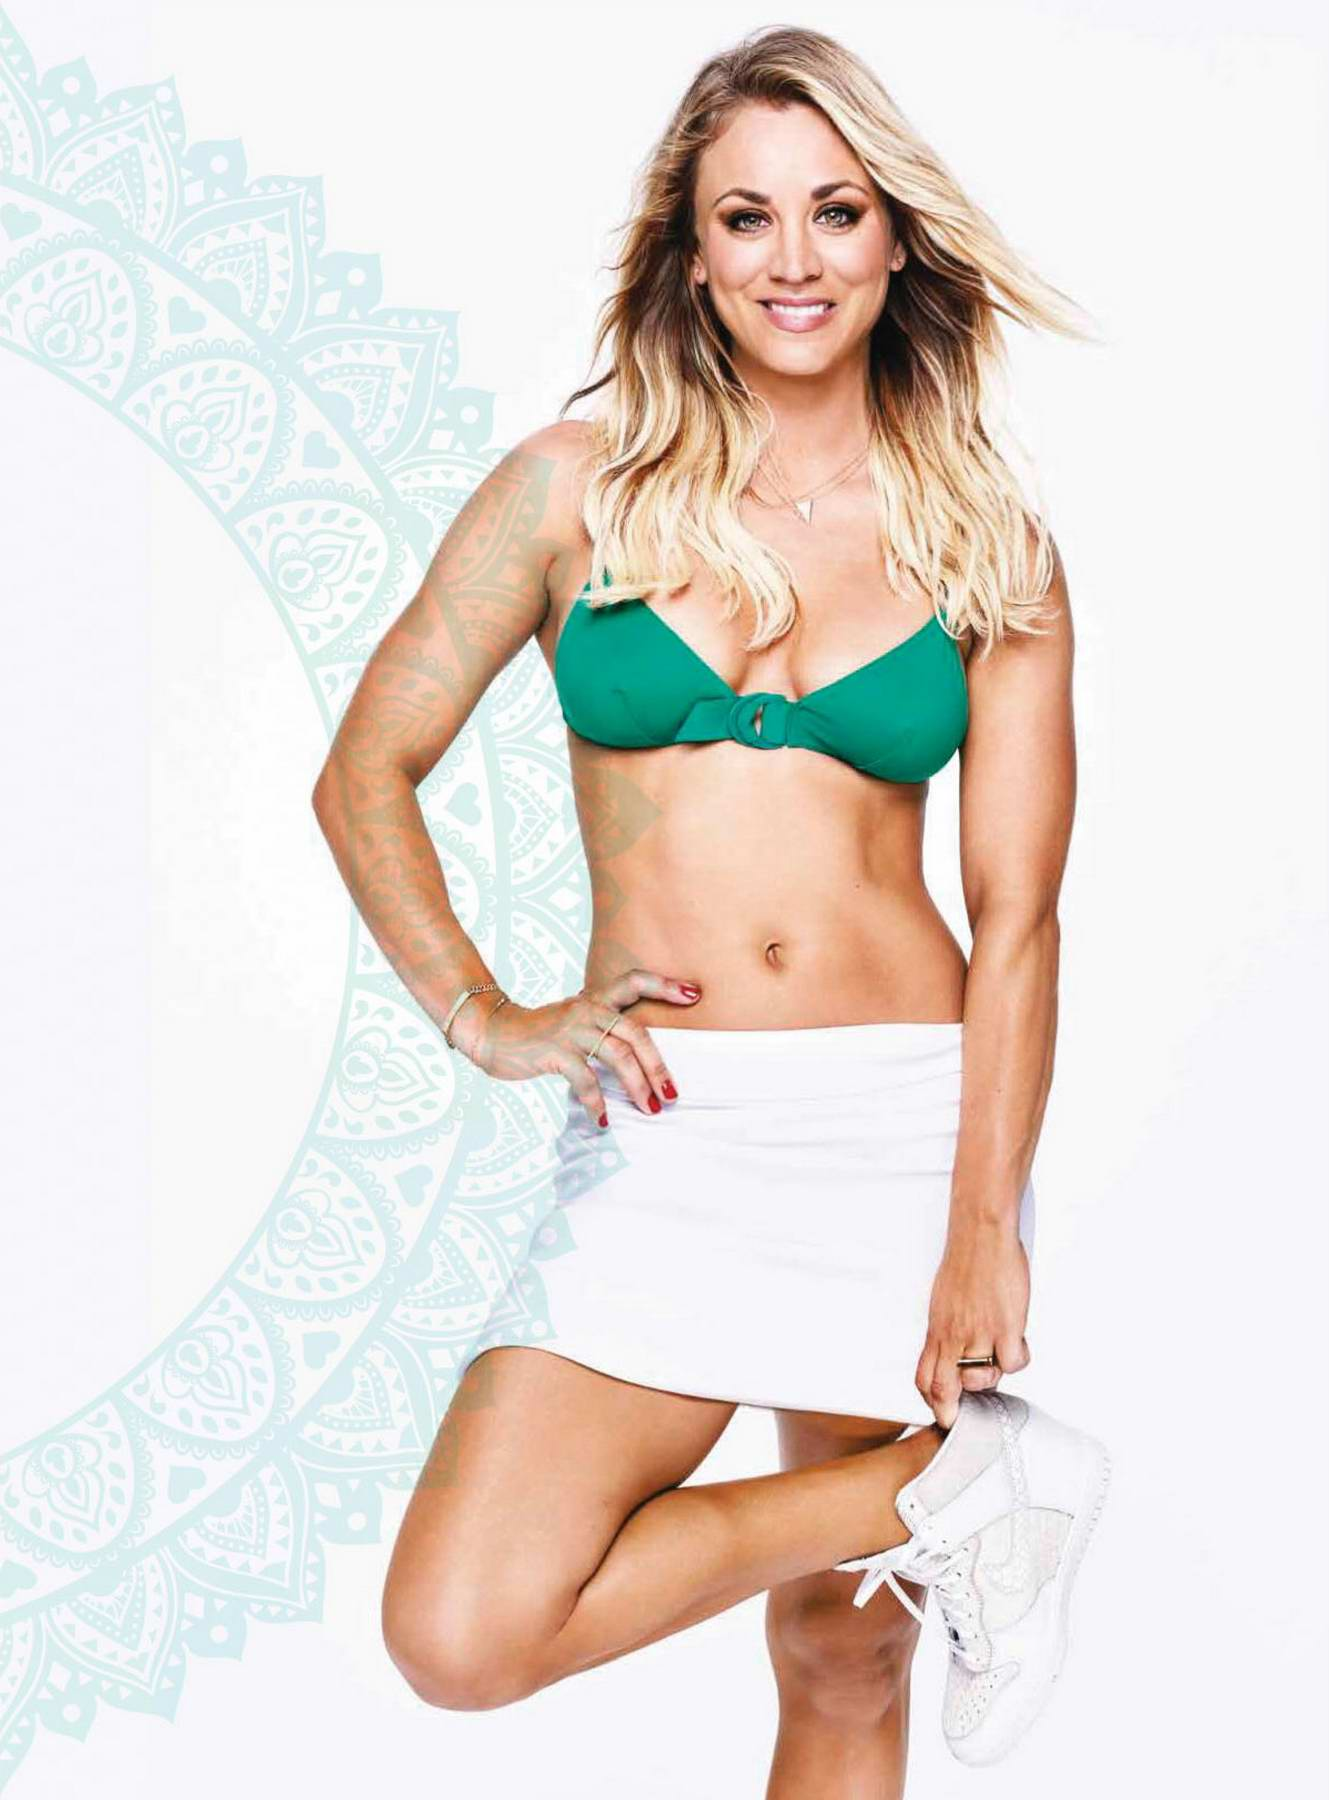 Kaley Cuoco features in Women's Health Magazine, Chile - February 2018